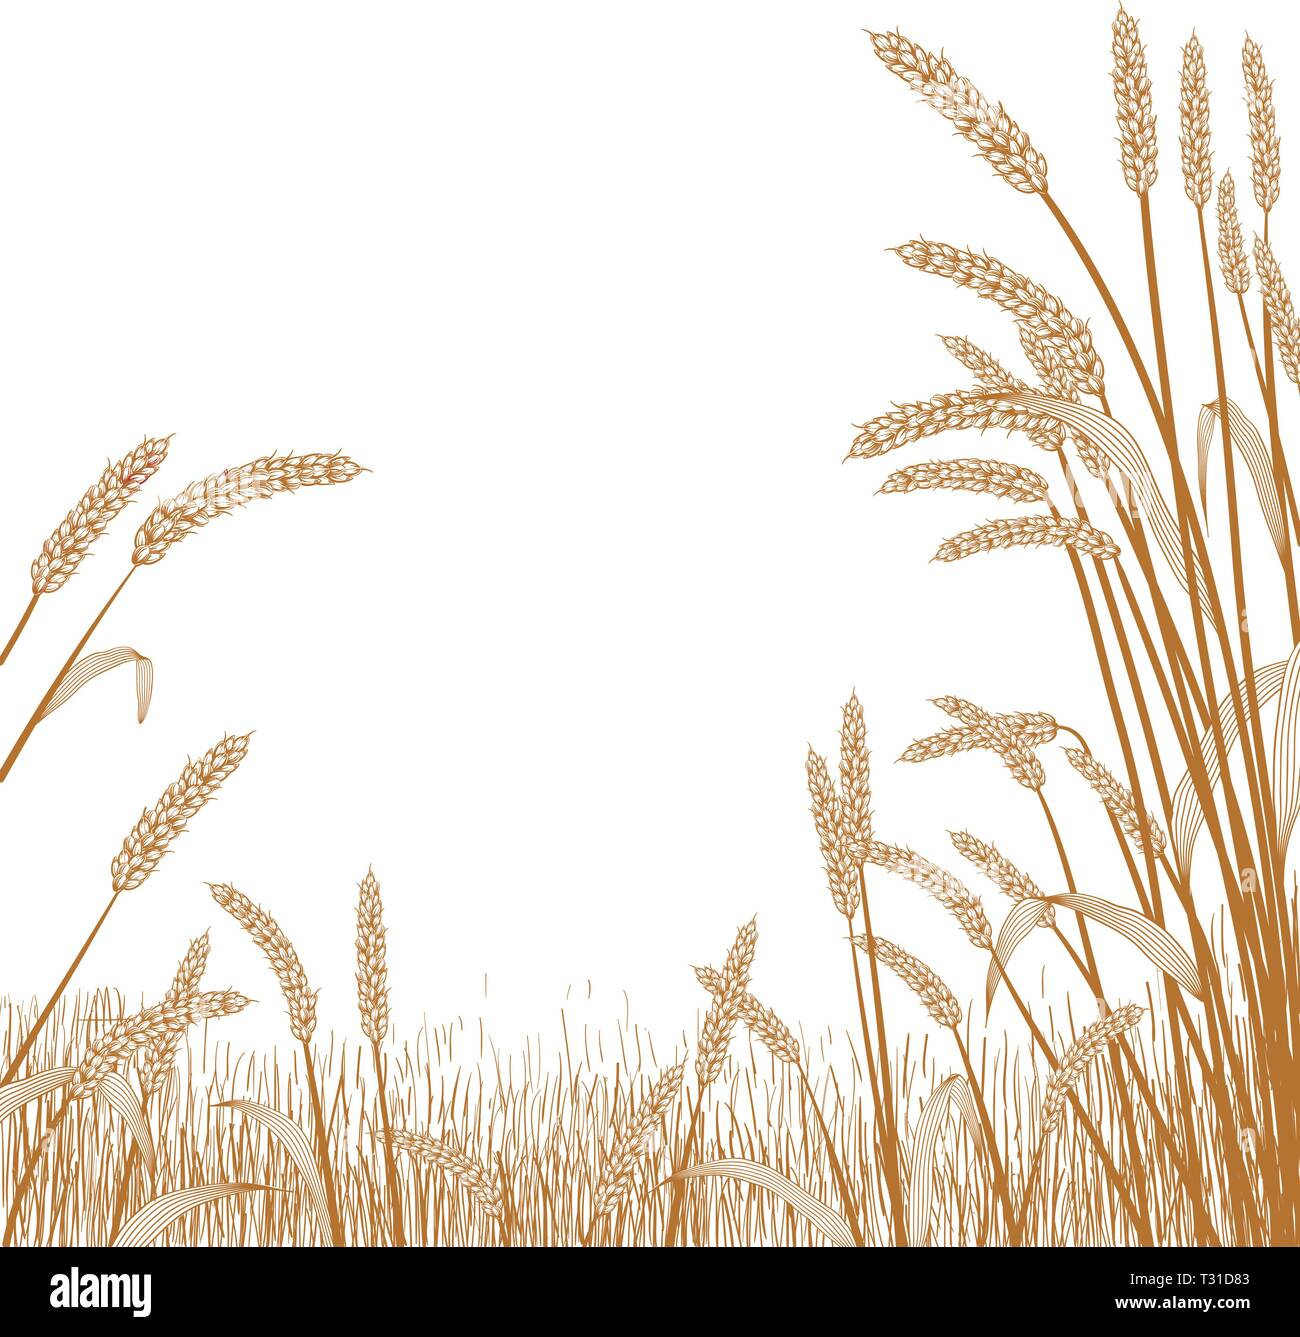 View of across a wheat field with wheat grass strands framing the scene in the foreground - Stock Vector